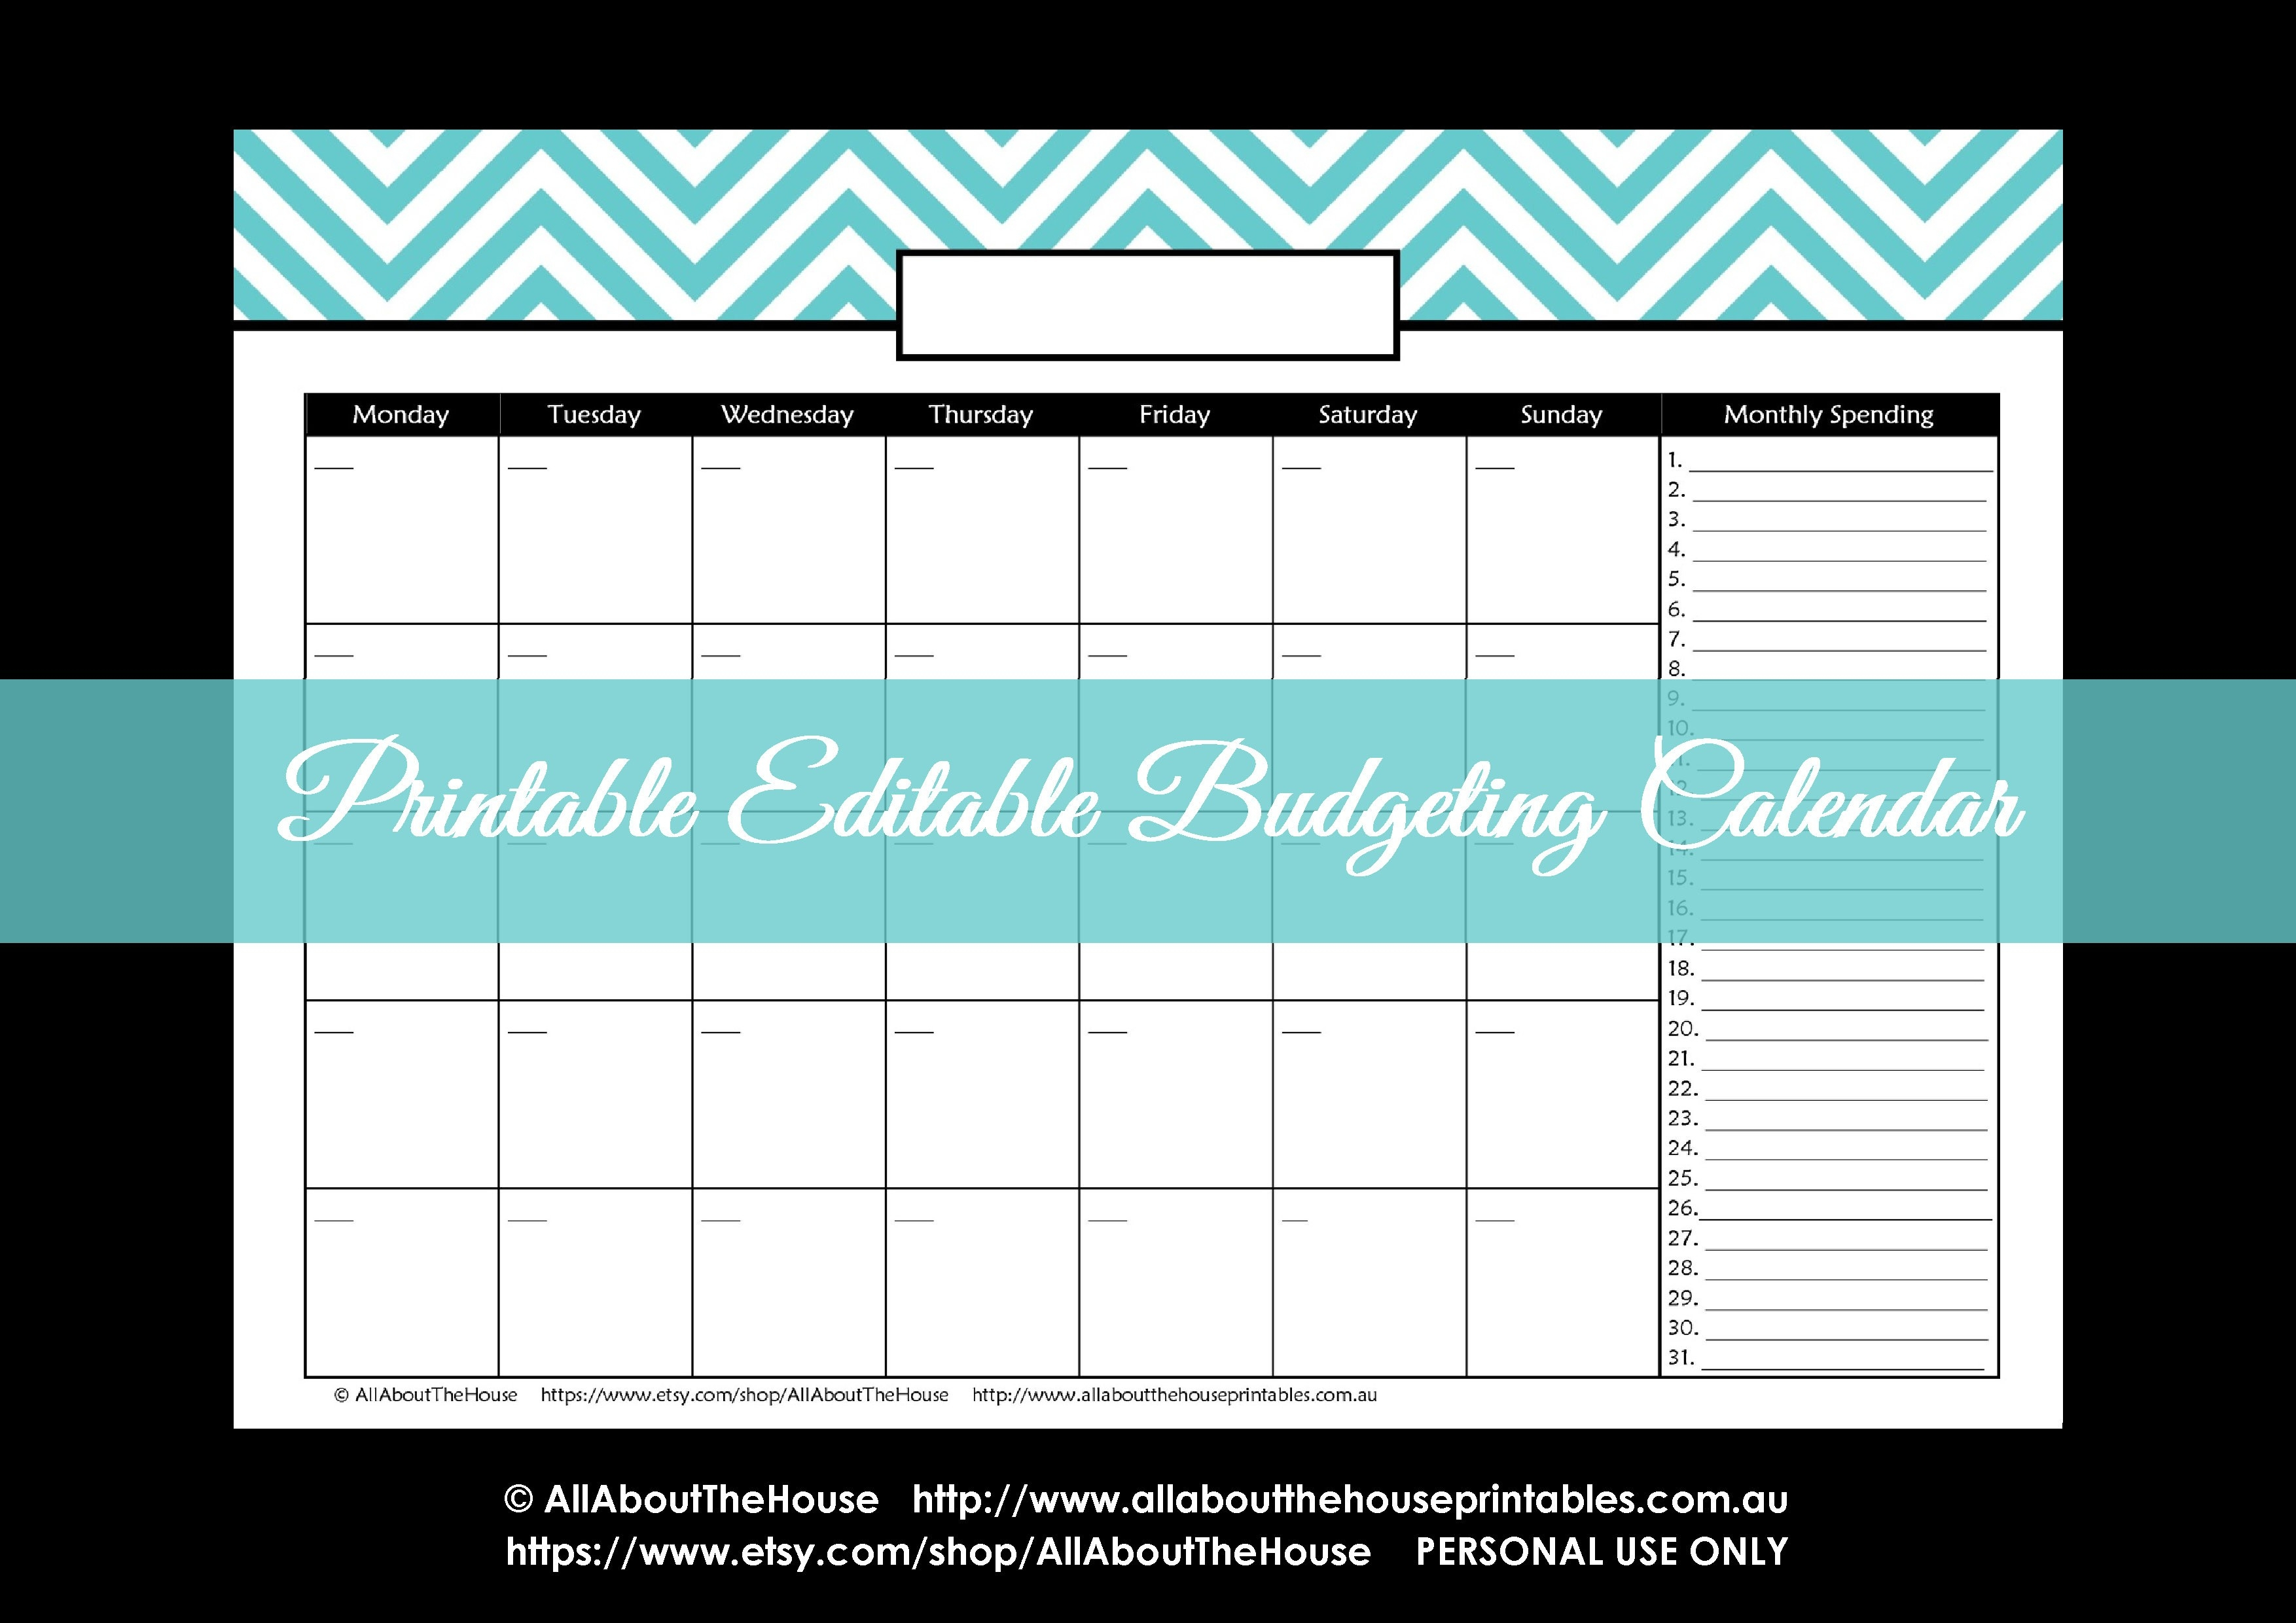 Free Printable Bill Budget Calendar | Example Calendar Printable within Free Printable Bill Payment Calendar